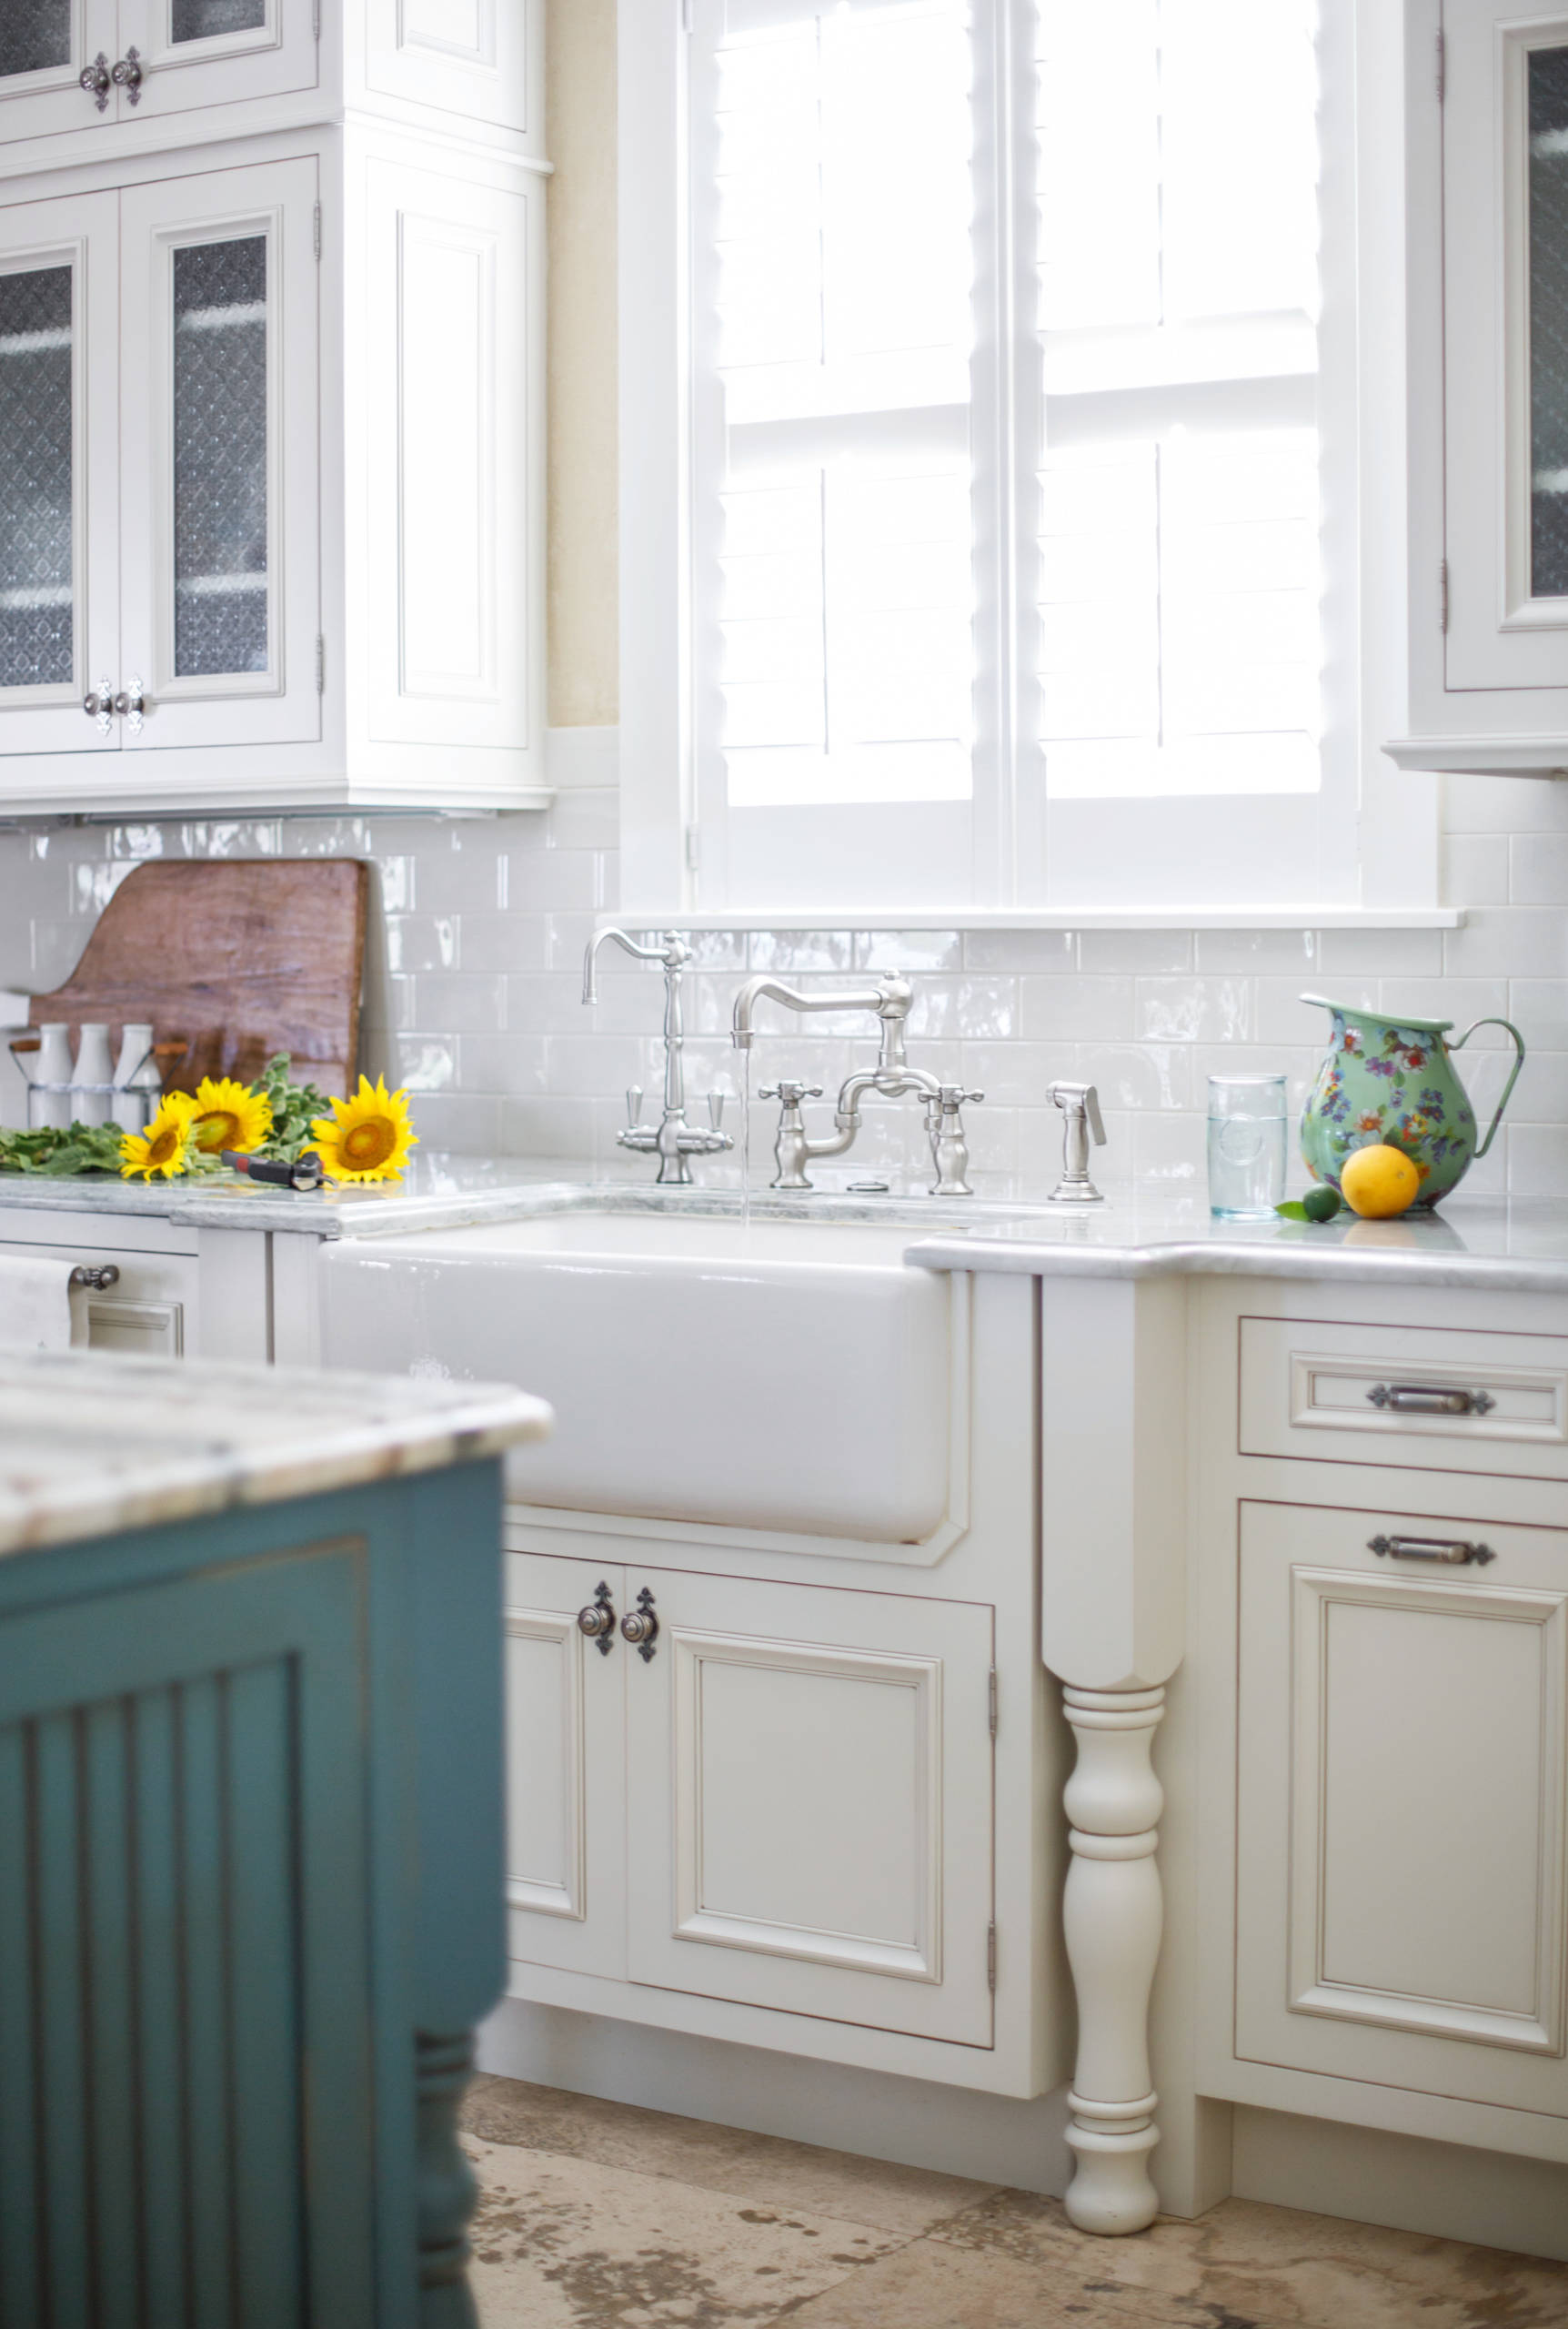 75 Beautiful Farmhouse Kitchen With Distressed Cabinets Pictures Ideas December 2020 Houzz